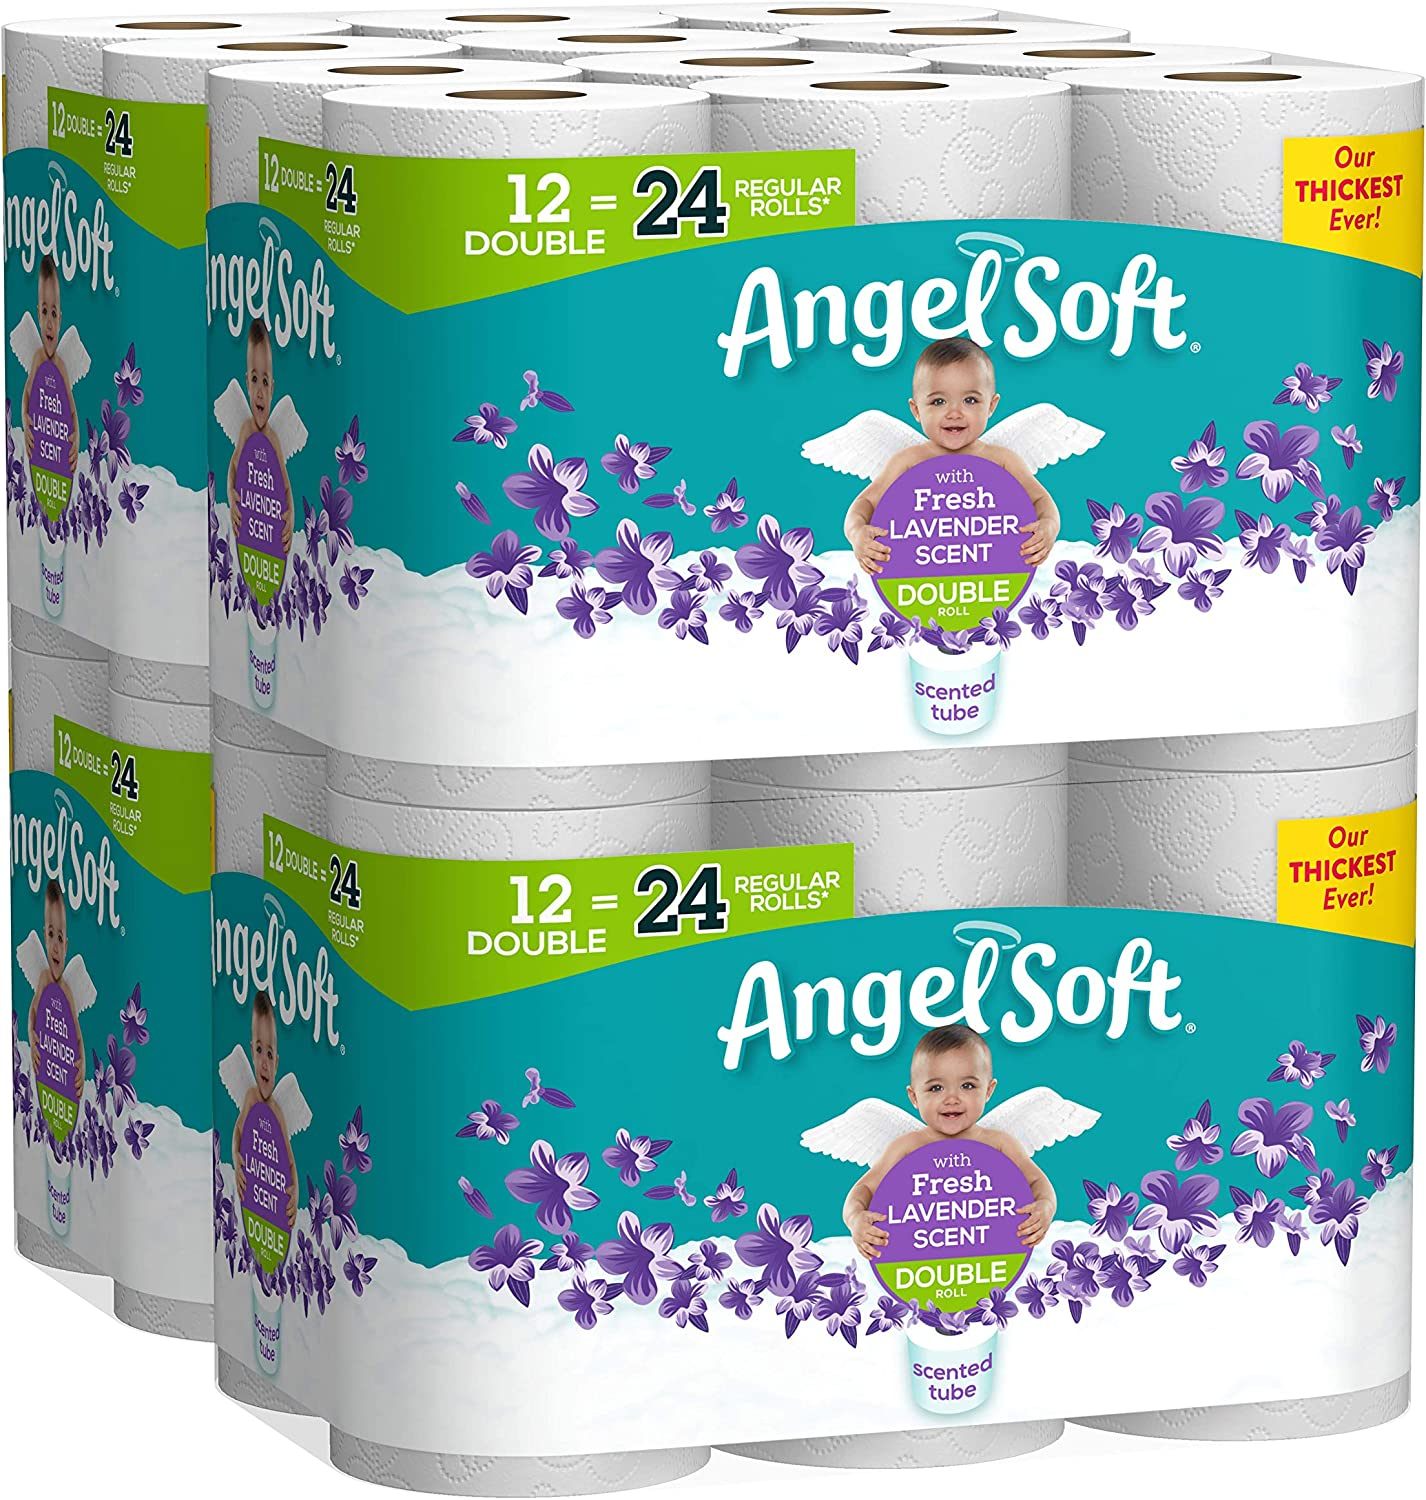 Angel Soft Toilet Paper with Fresh Lavender Scented Tube, 48 Double Rolls = 96 Regular Rolls, 214 2-Ply Sheets Per Roll